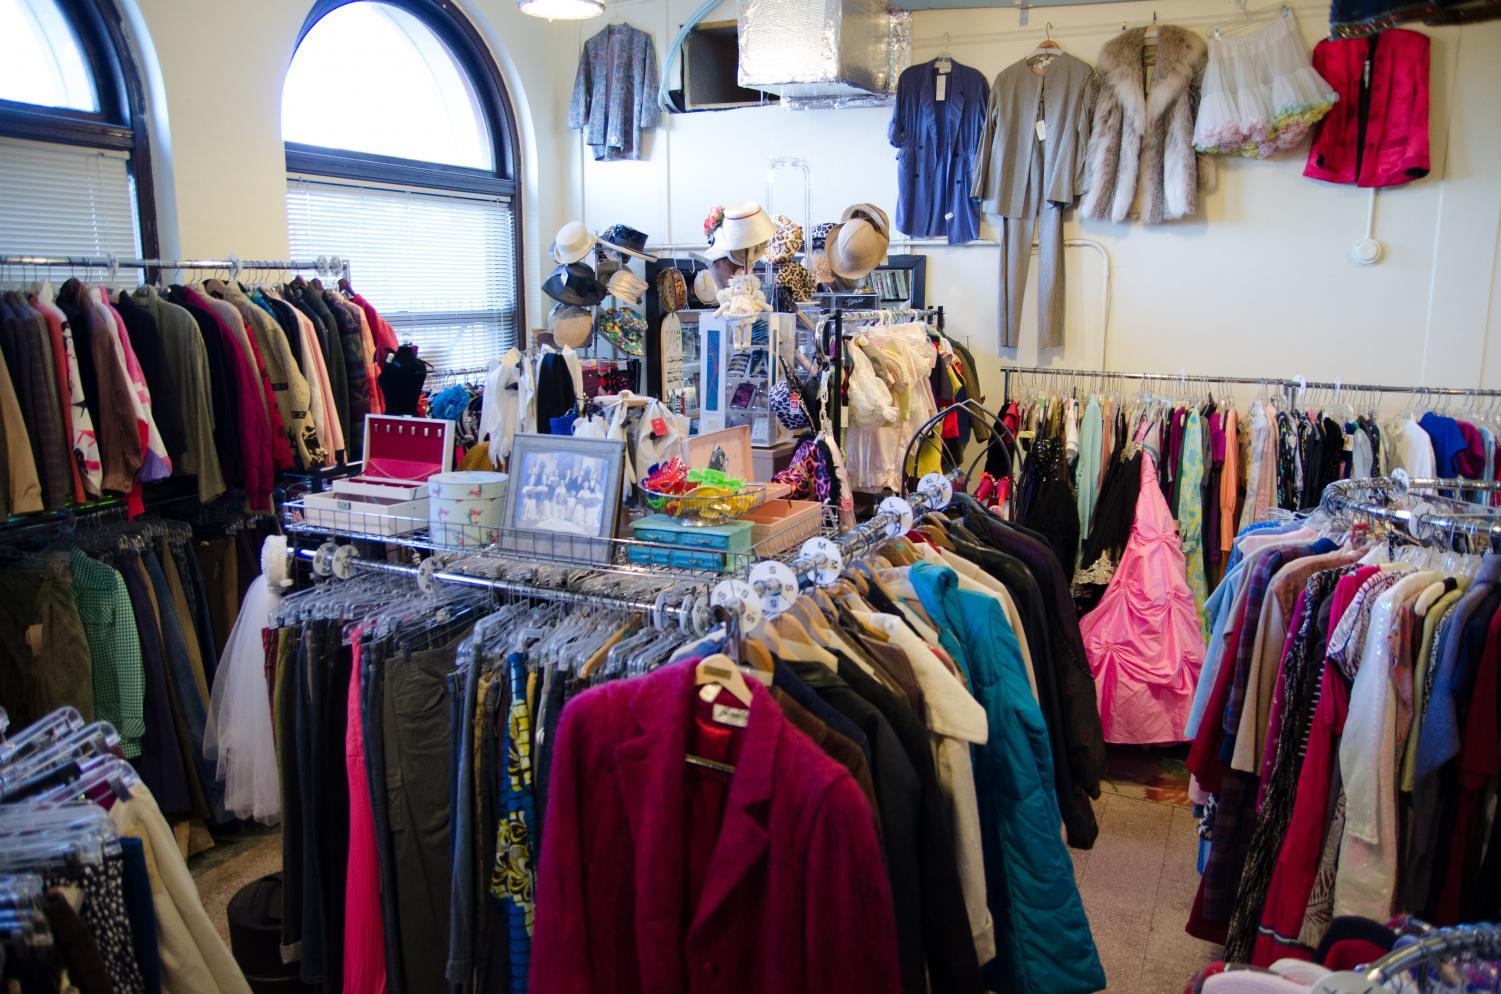 Dandelion Vintage & Used Clothing store is located at 100 N. Chestnut St. downtown Champaign. You can find smaller household items for your desk, bathroom or kitchen in secondhand stores like Dandelion or other locations closer to campus.